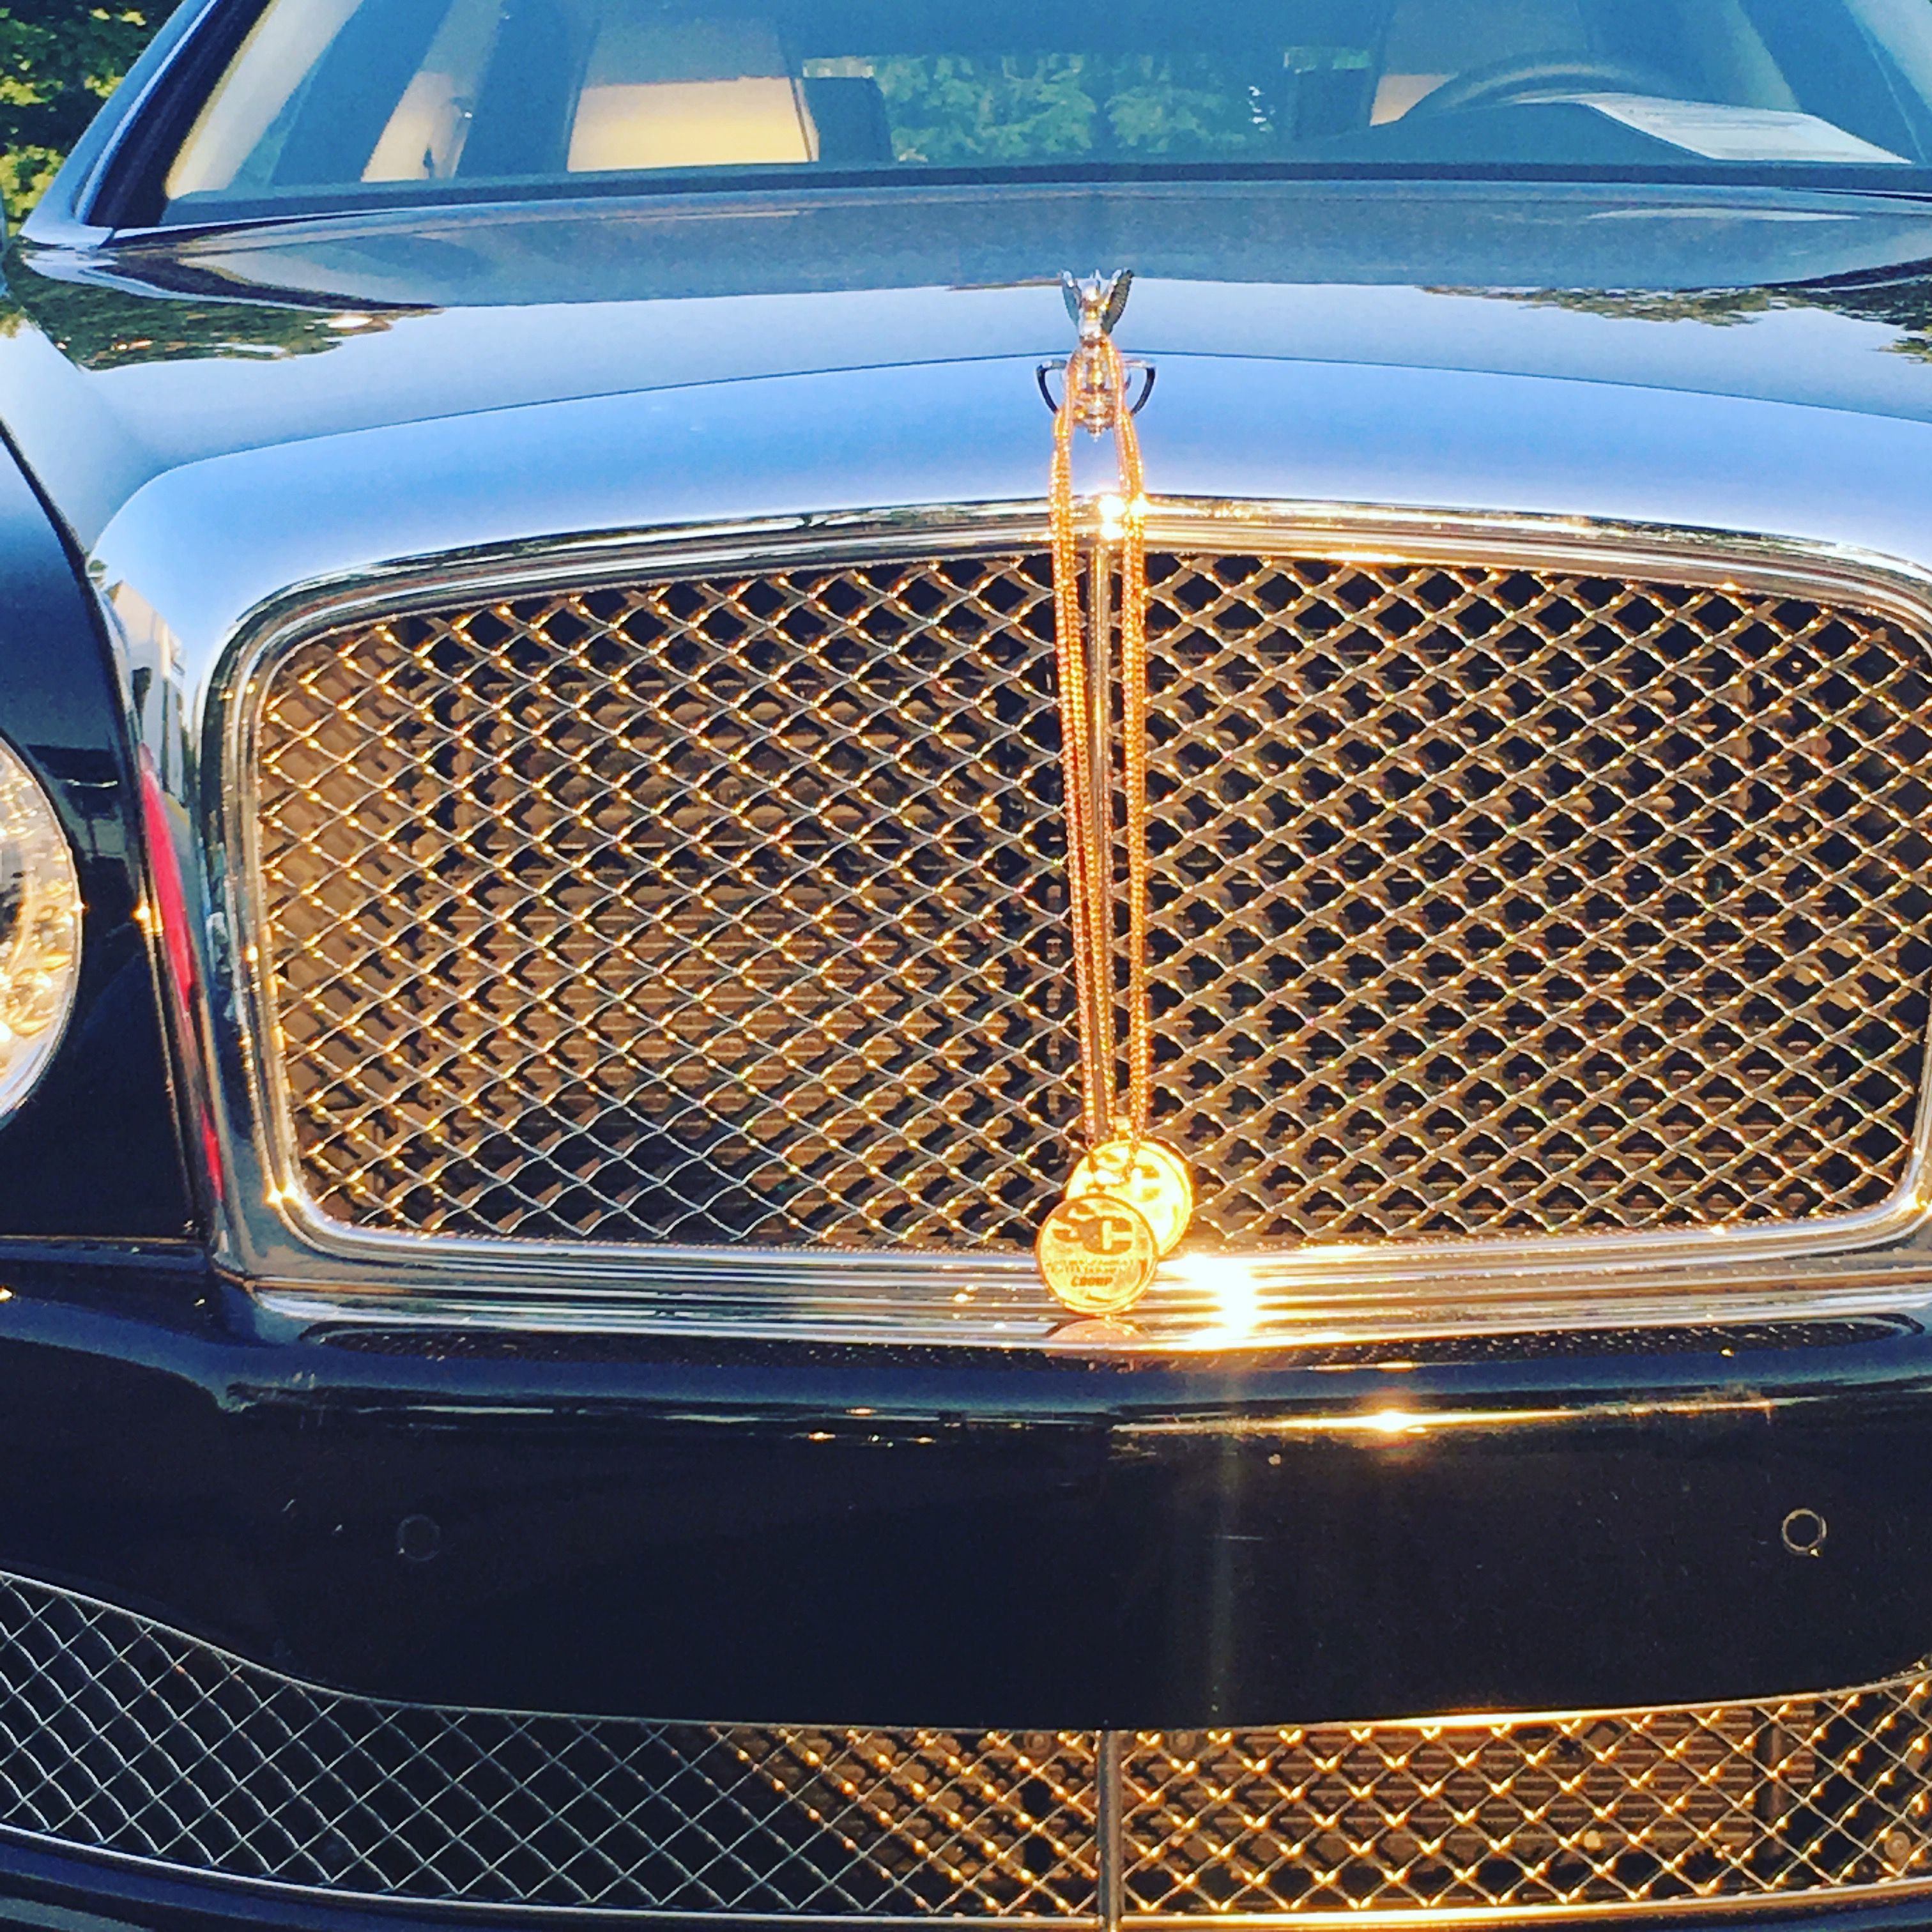 That S What We Call A Chainreaction Grillz Bentley